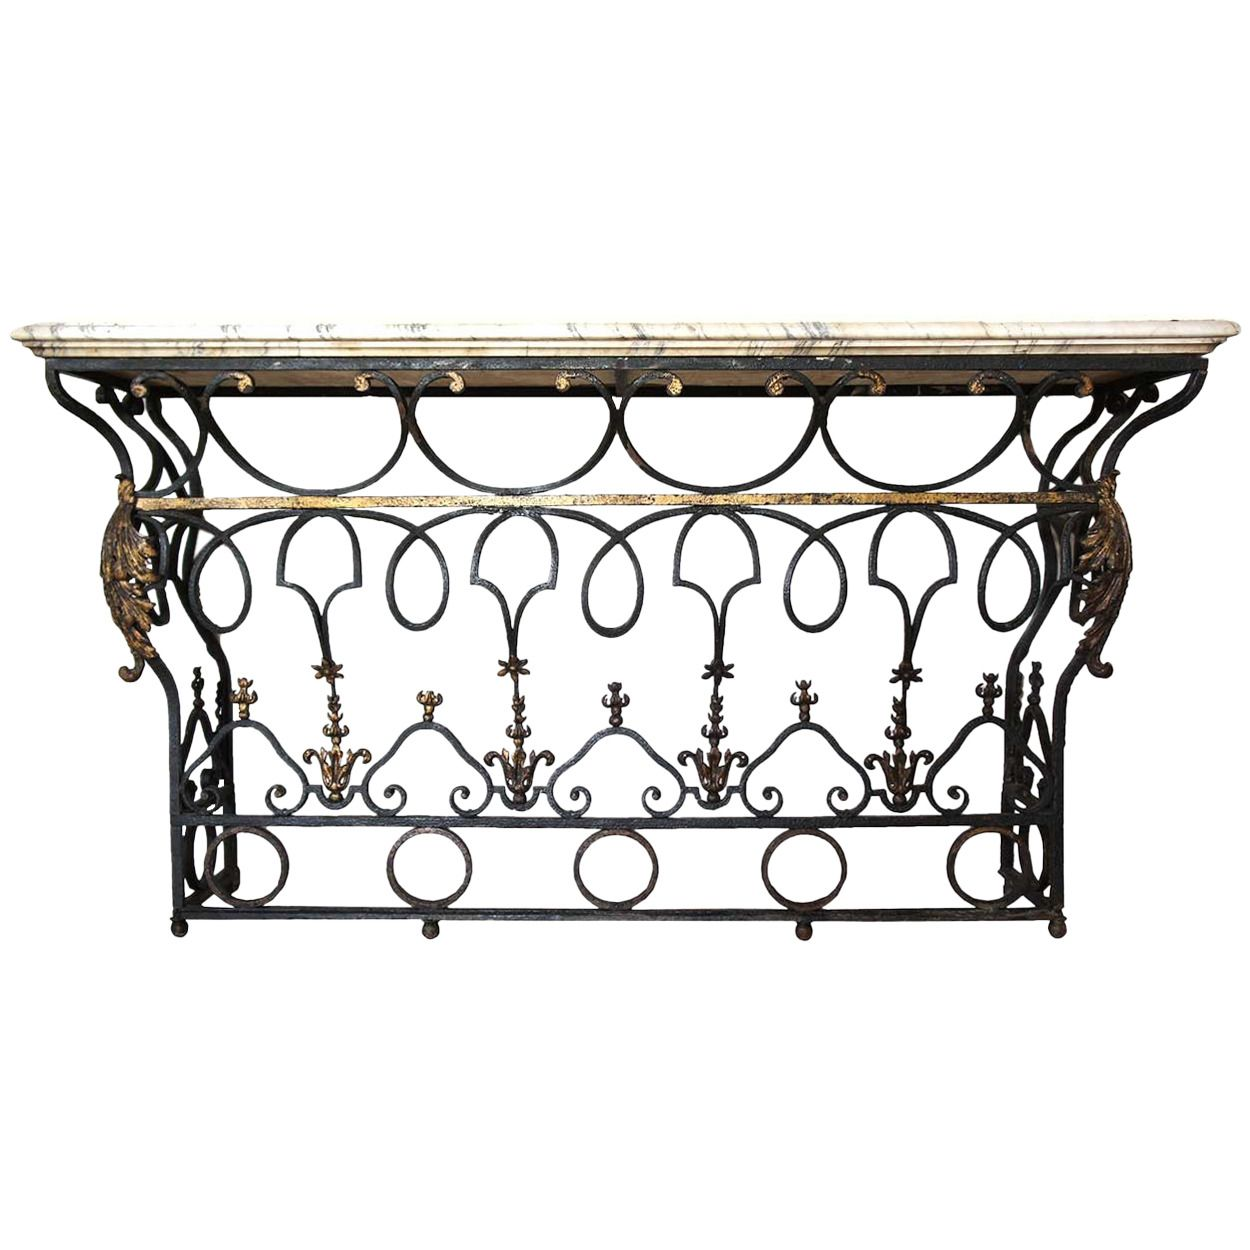 French Marble Top Wrought Iron Balcony As A Console Table From A